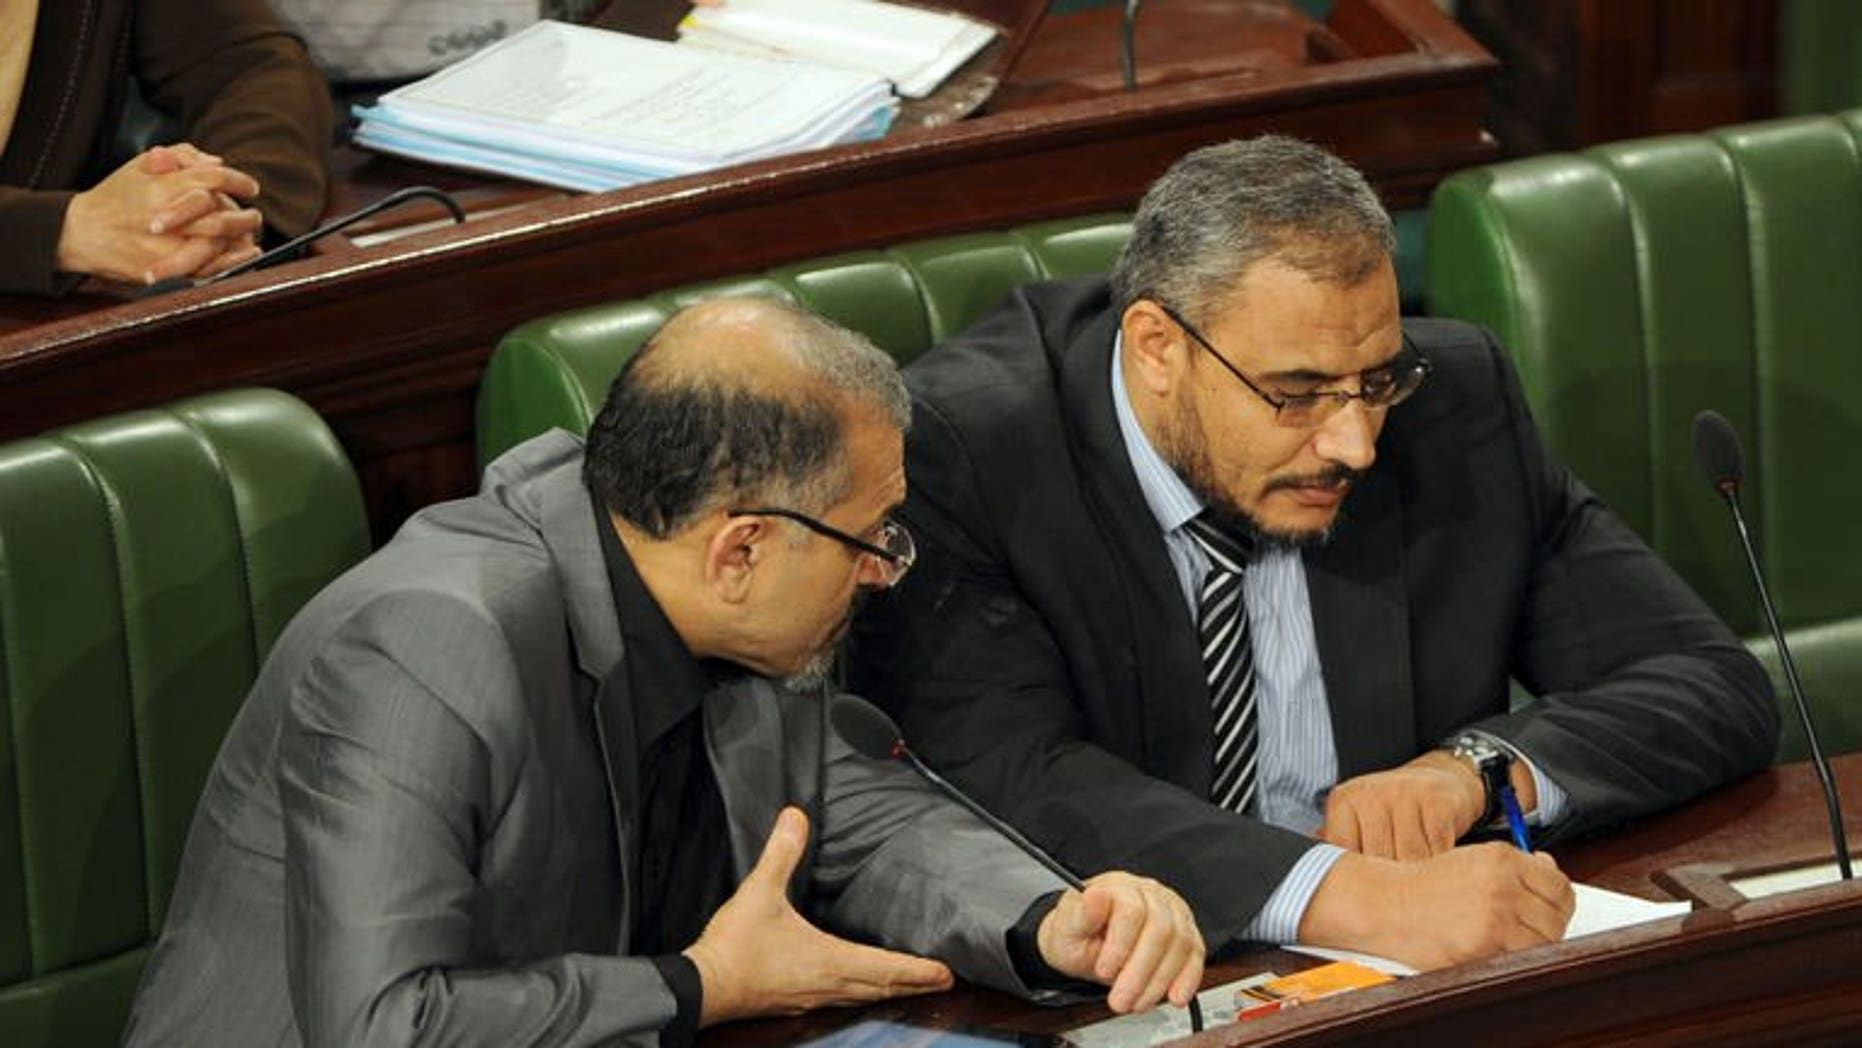 Tunisia's Islamist Prime Minister Ali Larayedh (L) chats with leader of Ennahda's Parliamentary group, Sahbi Atig as they attend a constituent assembly meeting on September 19, 2013.